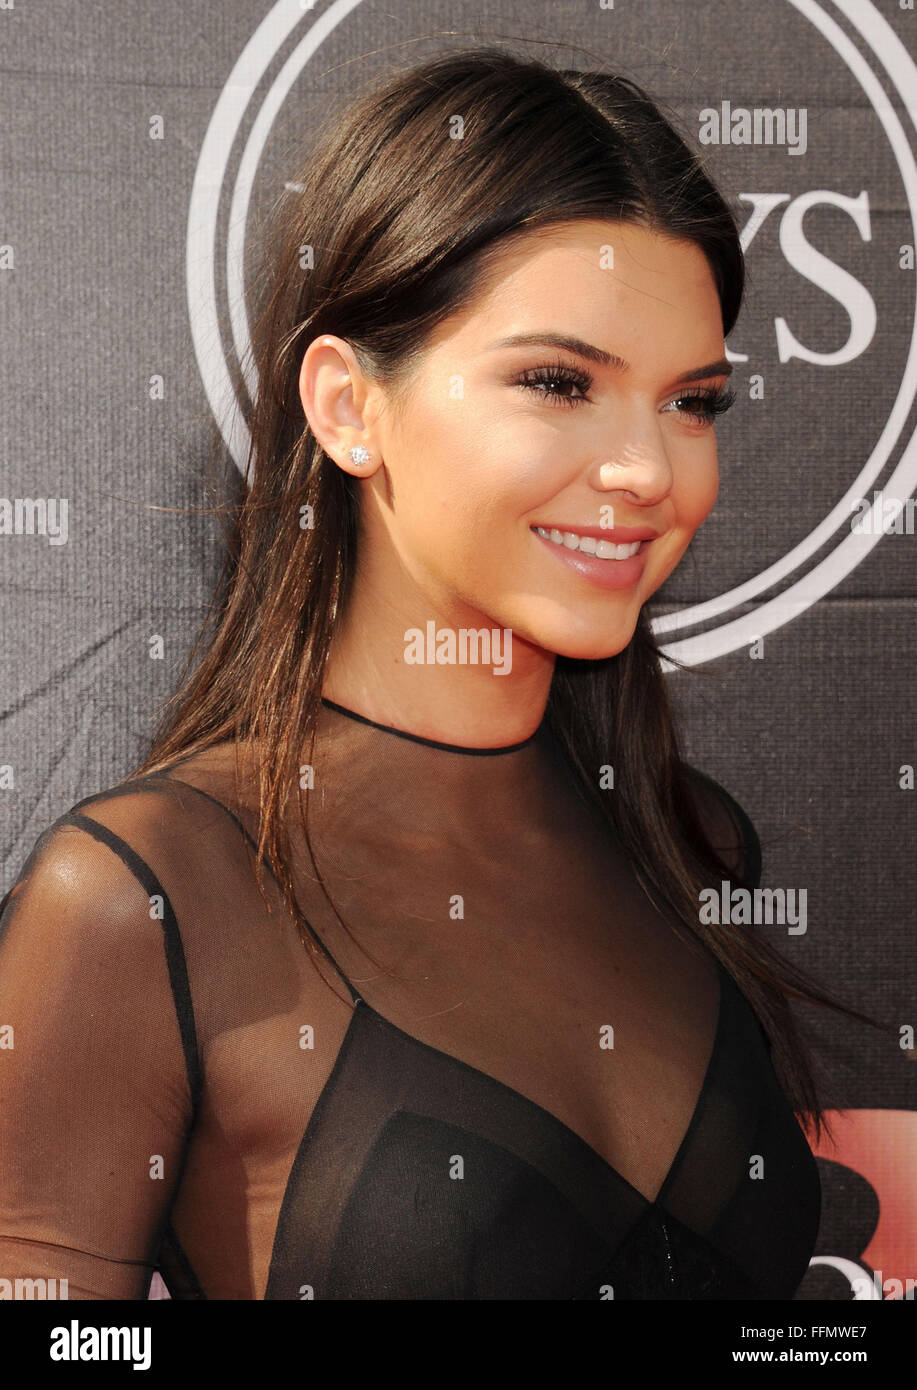 TV personality Kendall Jenner arrives at the The 2015 ESPYS at Microsoft Theater on July 15, 2015 in Los Angeles, - Stock Image